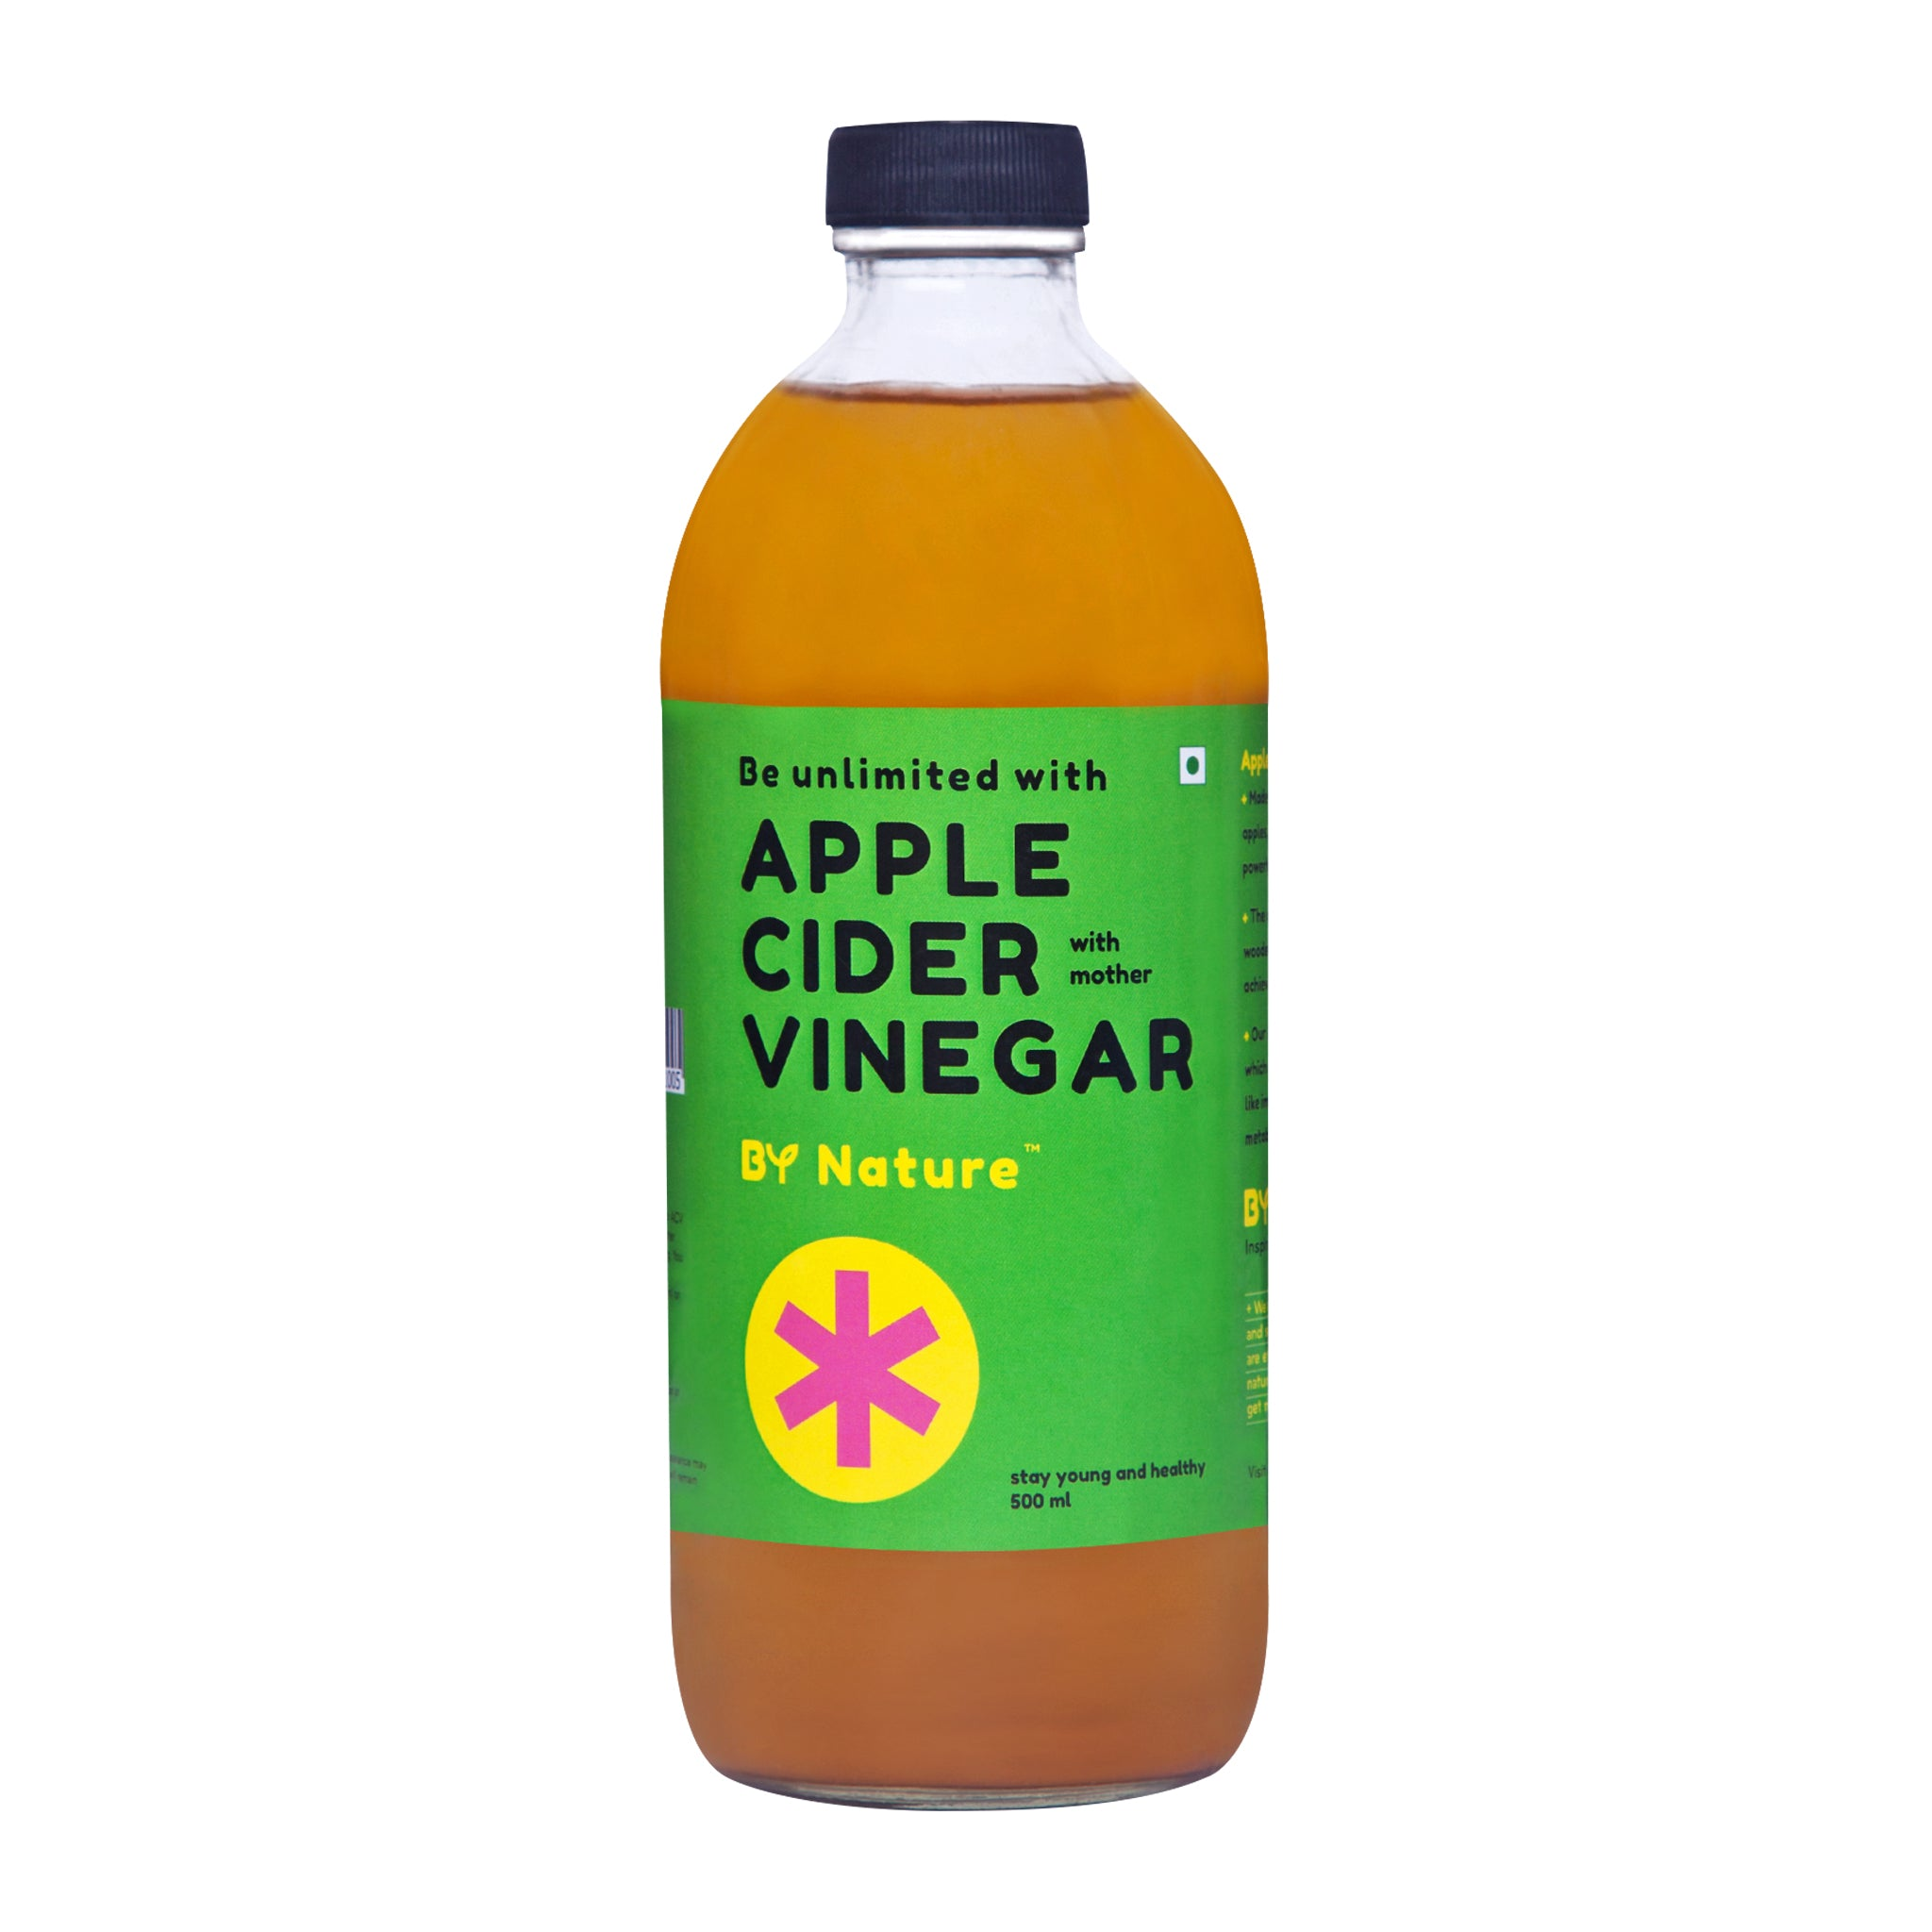 By Nature Apple Cider Vinegar with Mother